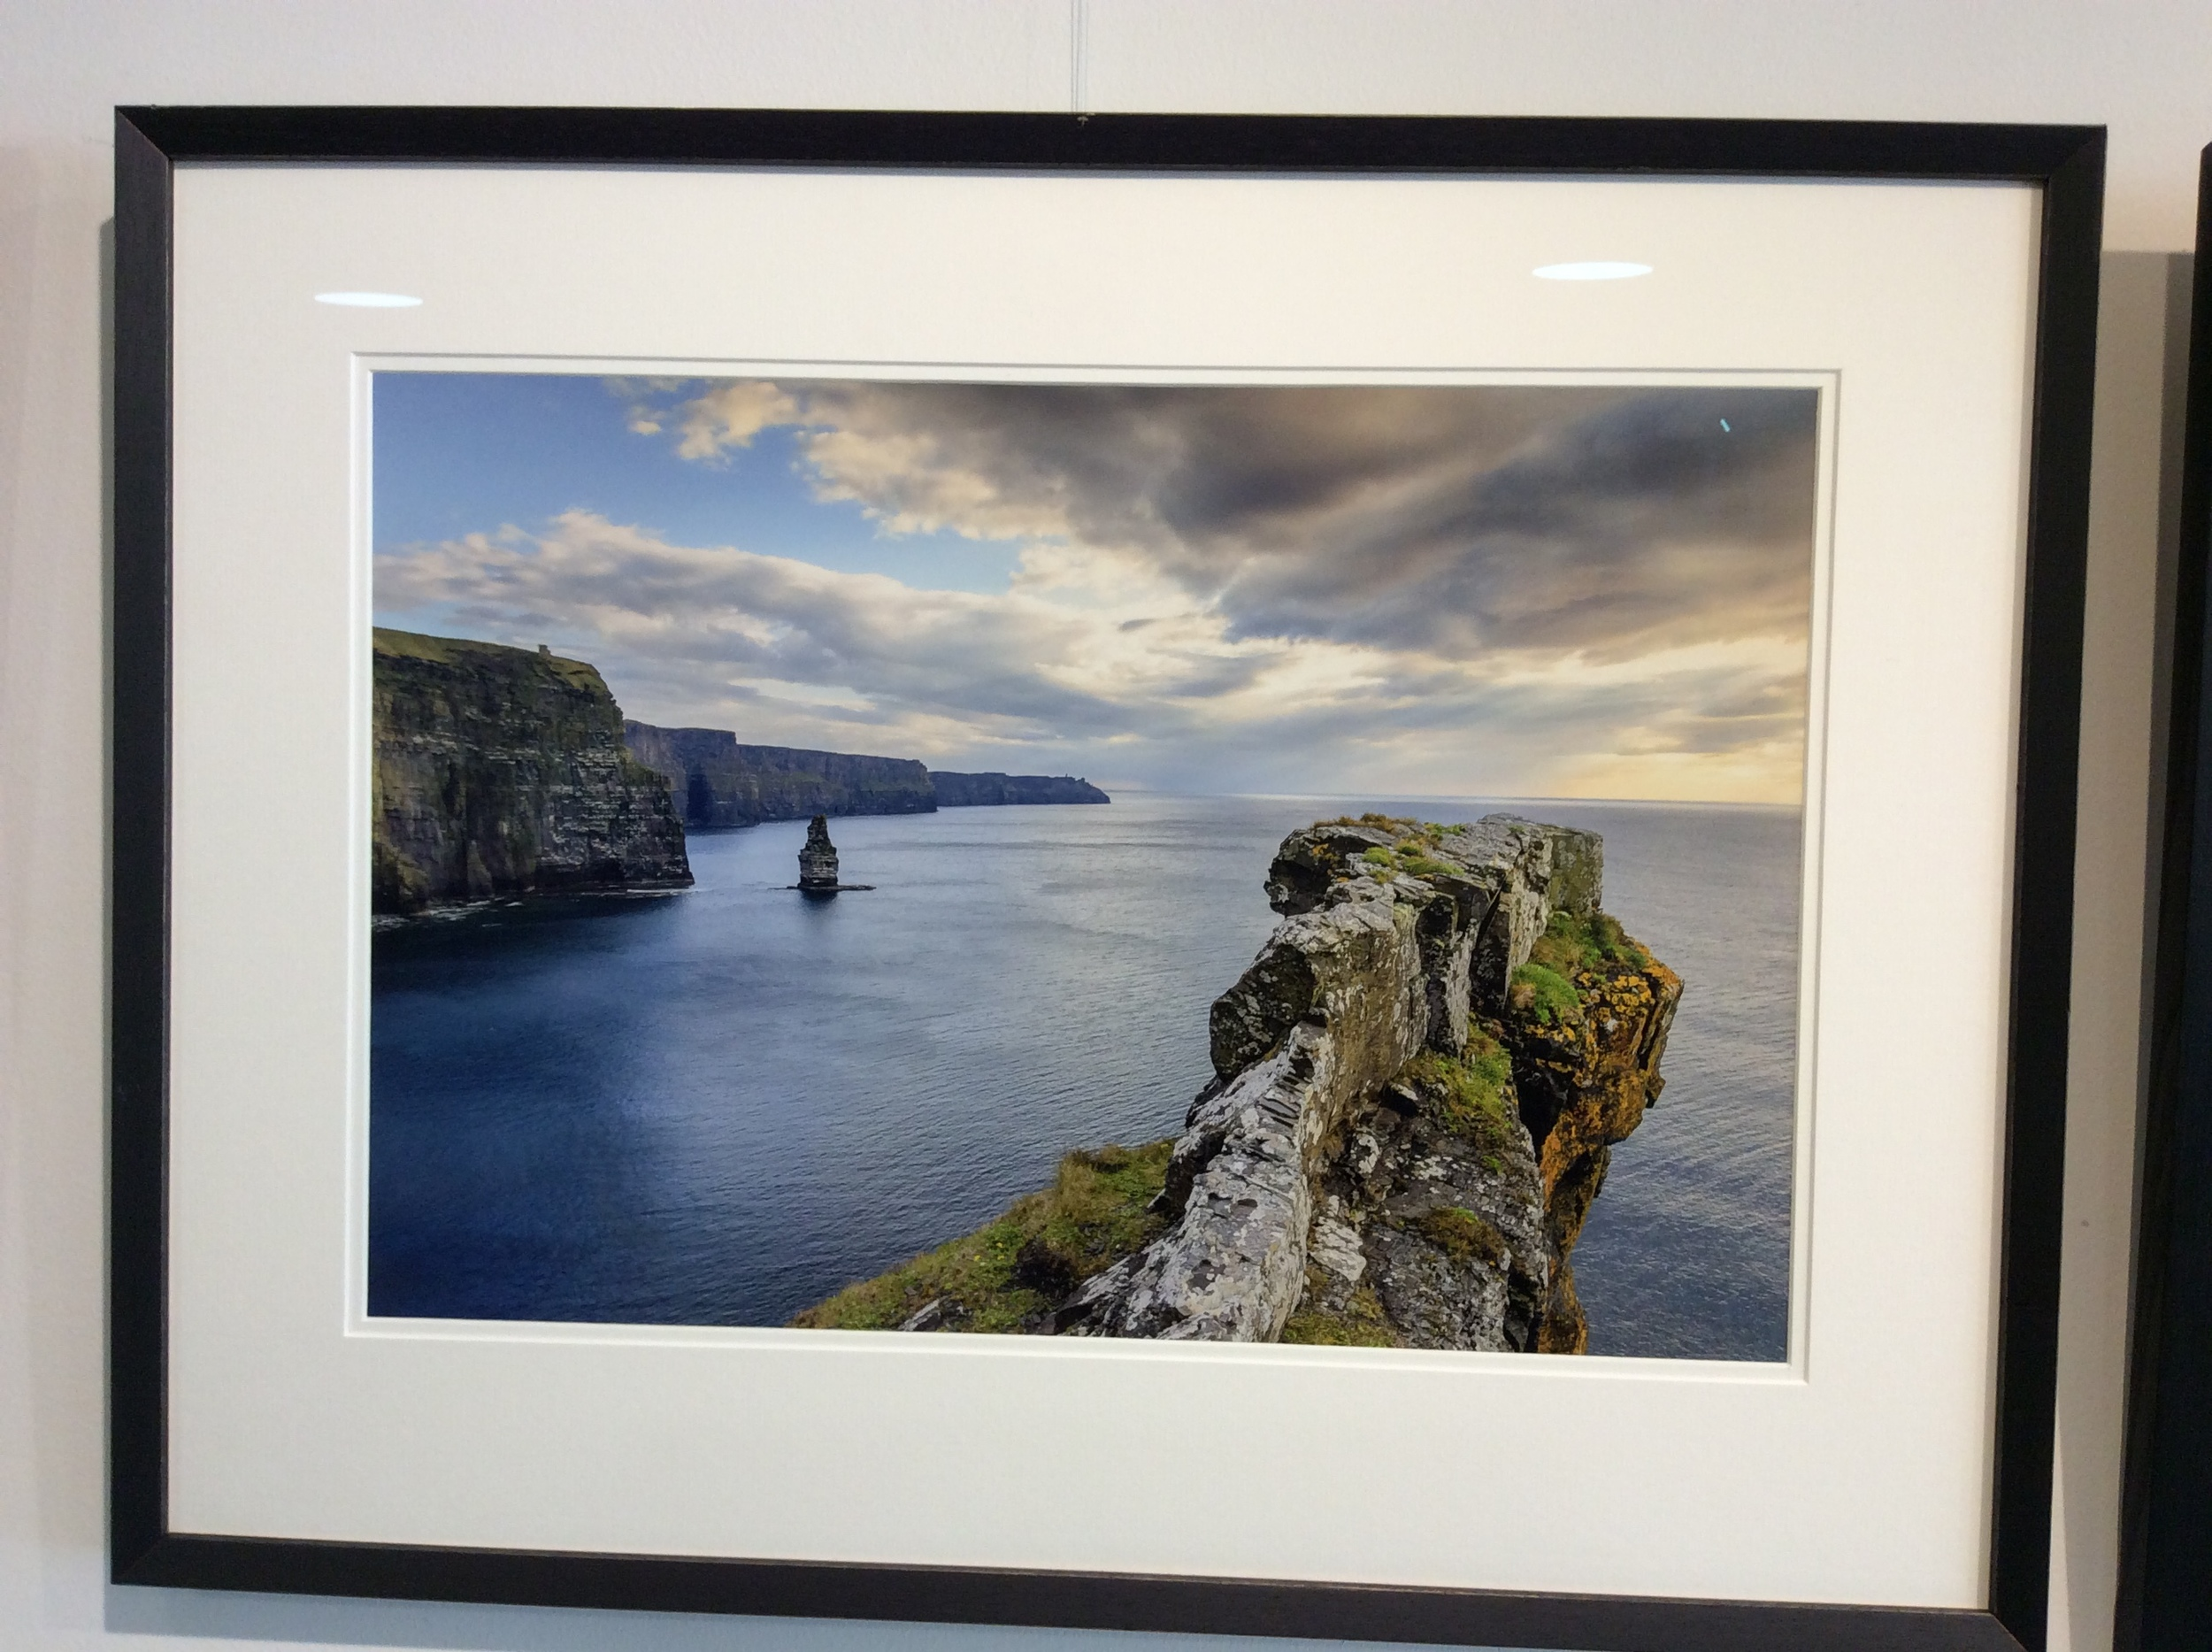 This photograph of the Cliffs Of Moher has an incredible 3d effect when viewed in real life.